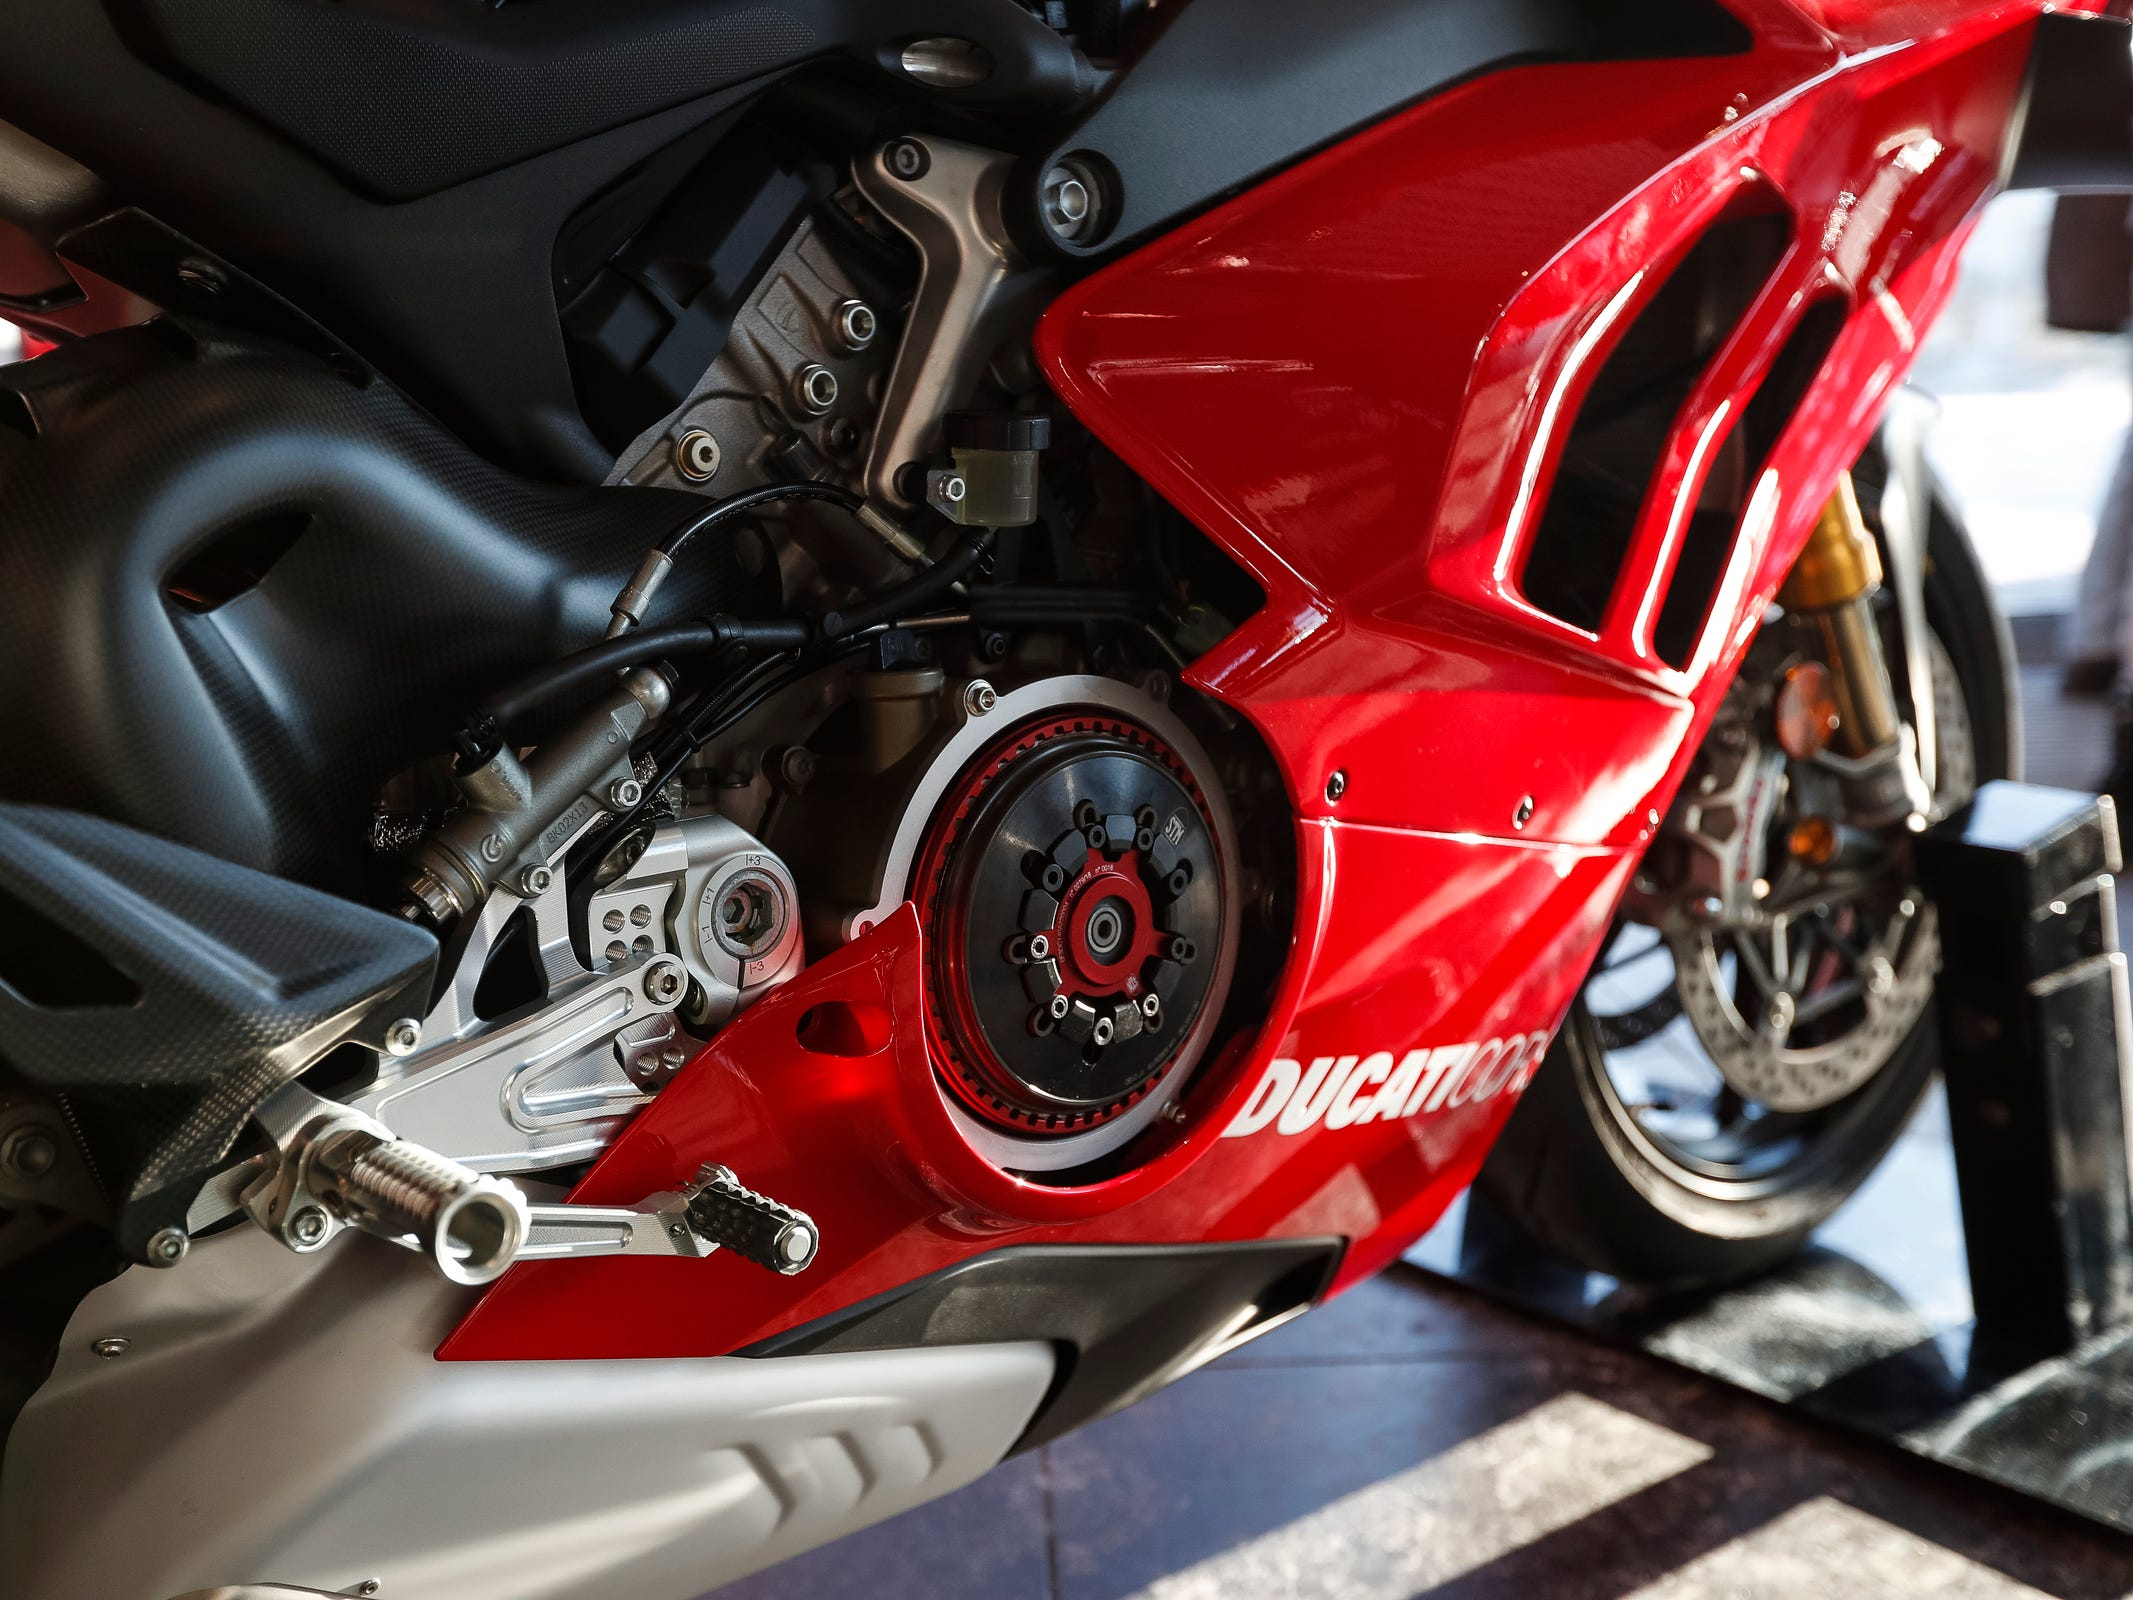 Ducati 2019 Panigale V4 R was on display at Ducati Detroit in Birmingham, Wednesday, Jan. 30, 2019.